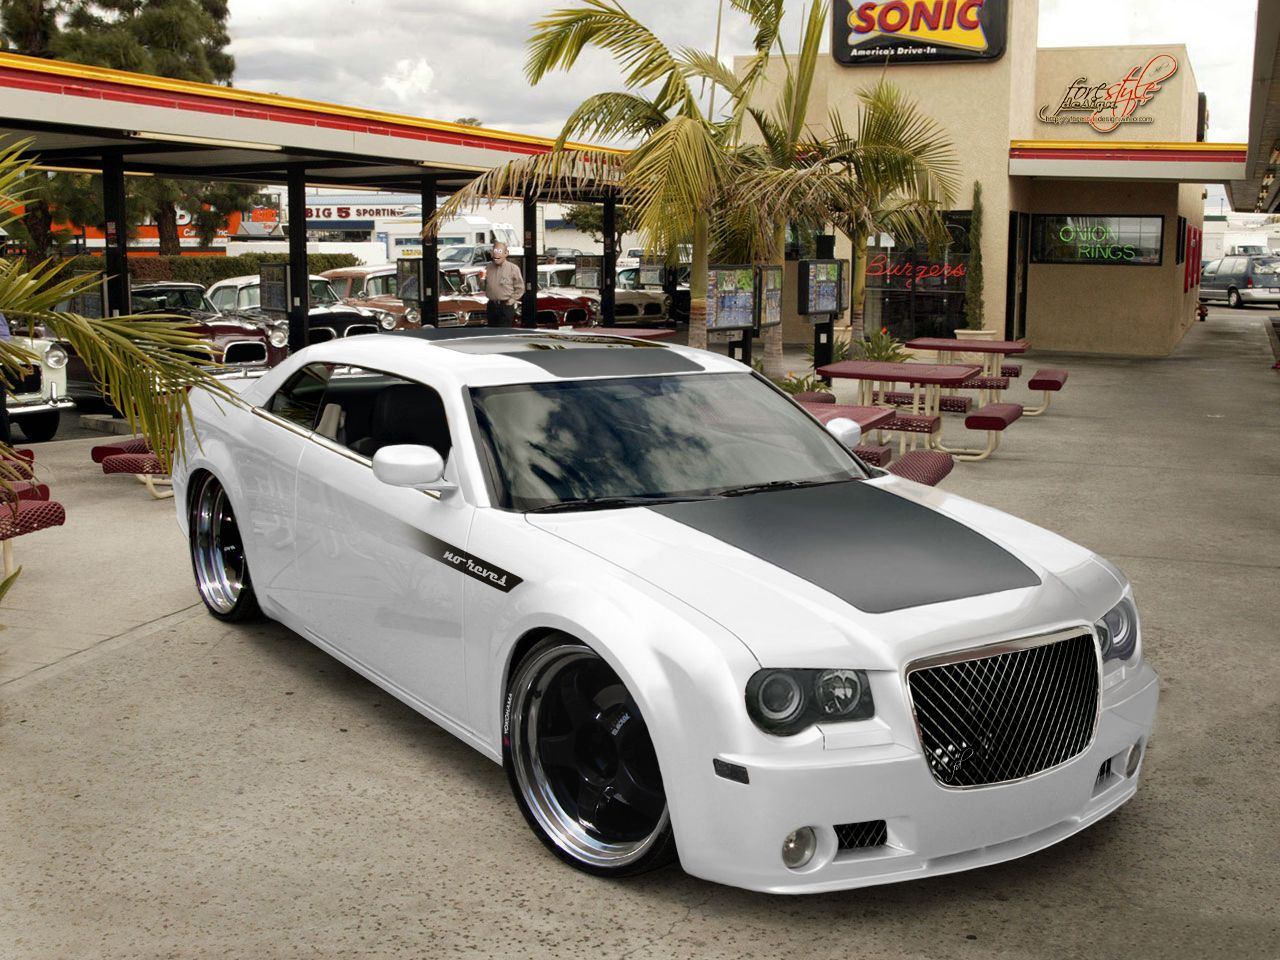 Chrysler 300 design for all your building construction plans